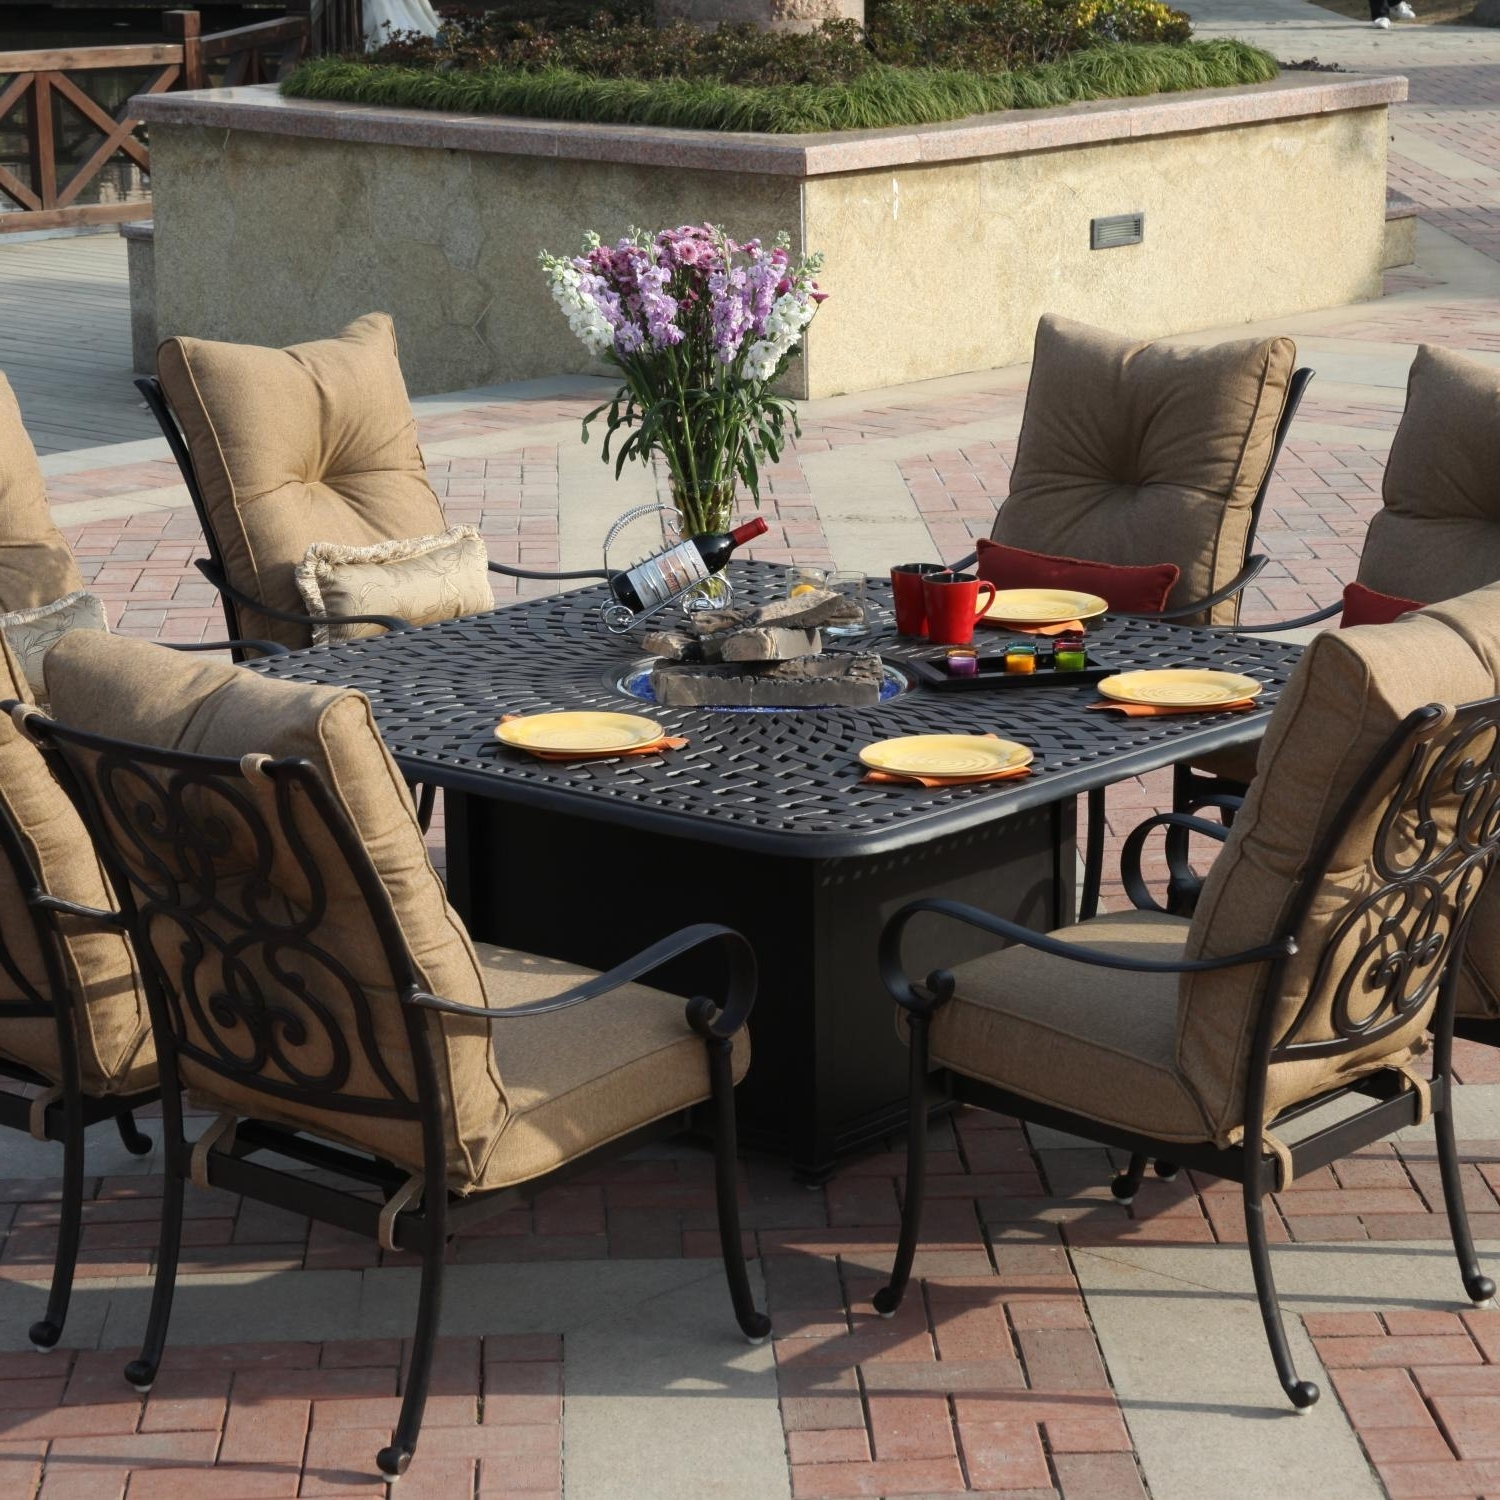 New Fire Pit Set Propane Conversation Sets Fire Pit Chat Set Throughout Well Known Patio Conversation Sets With Fire Table (View 6 of 15)